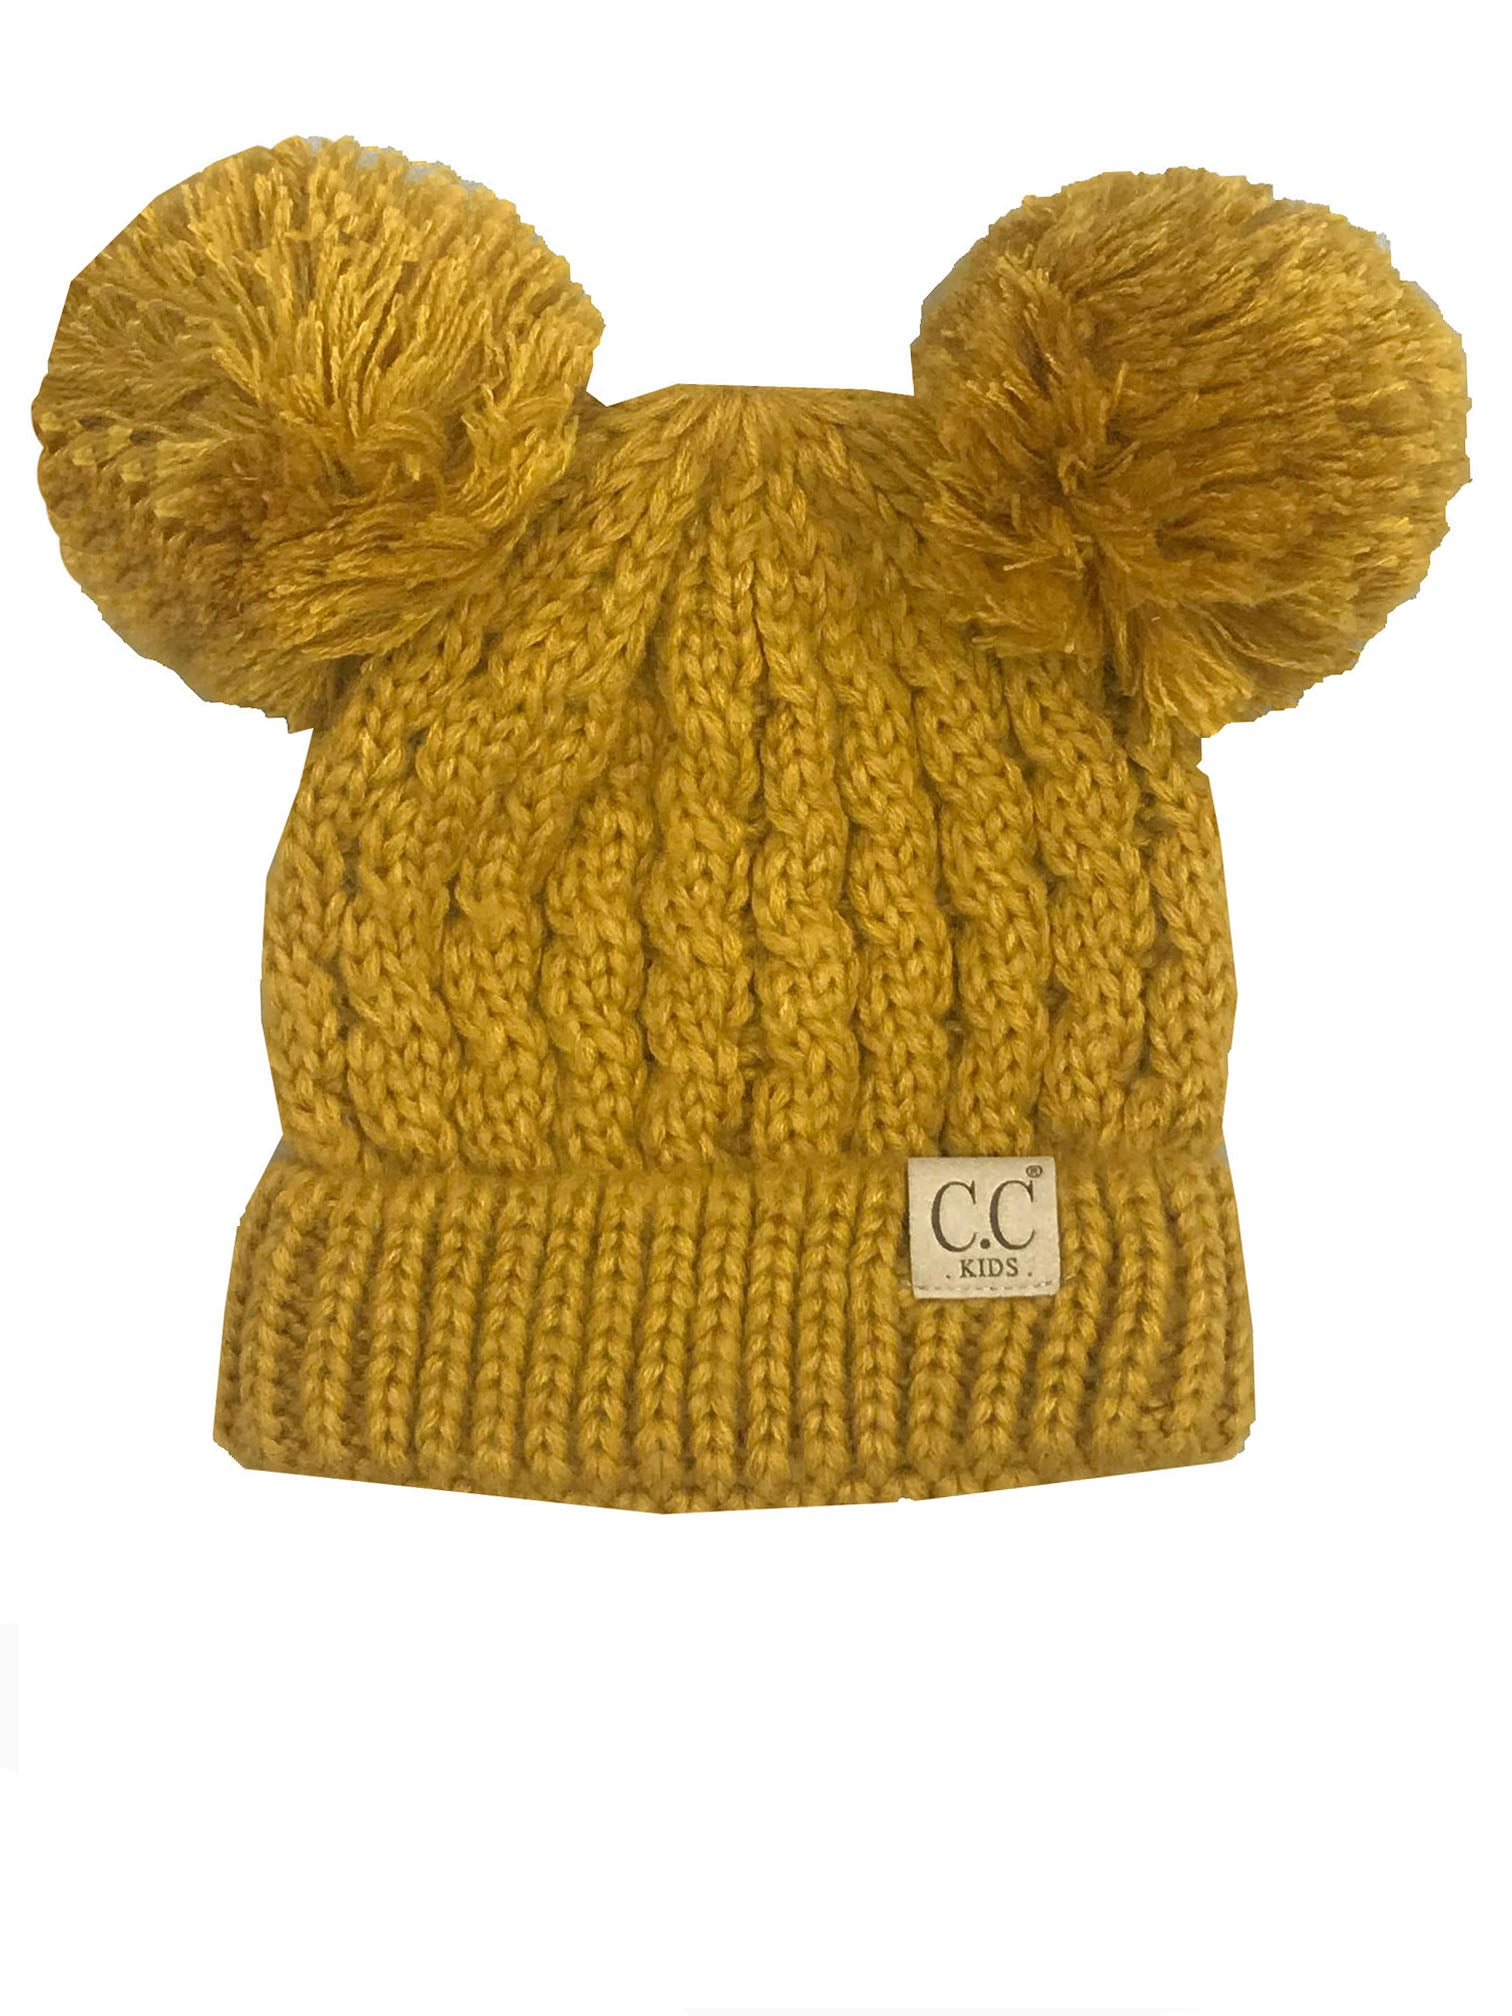 C.C Kid-24 Mustard Youth Beanie